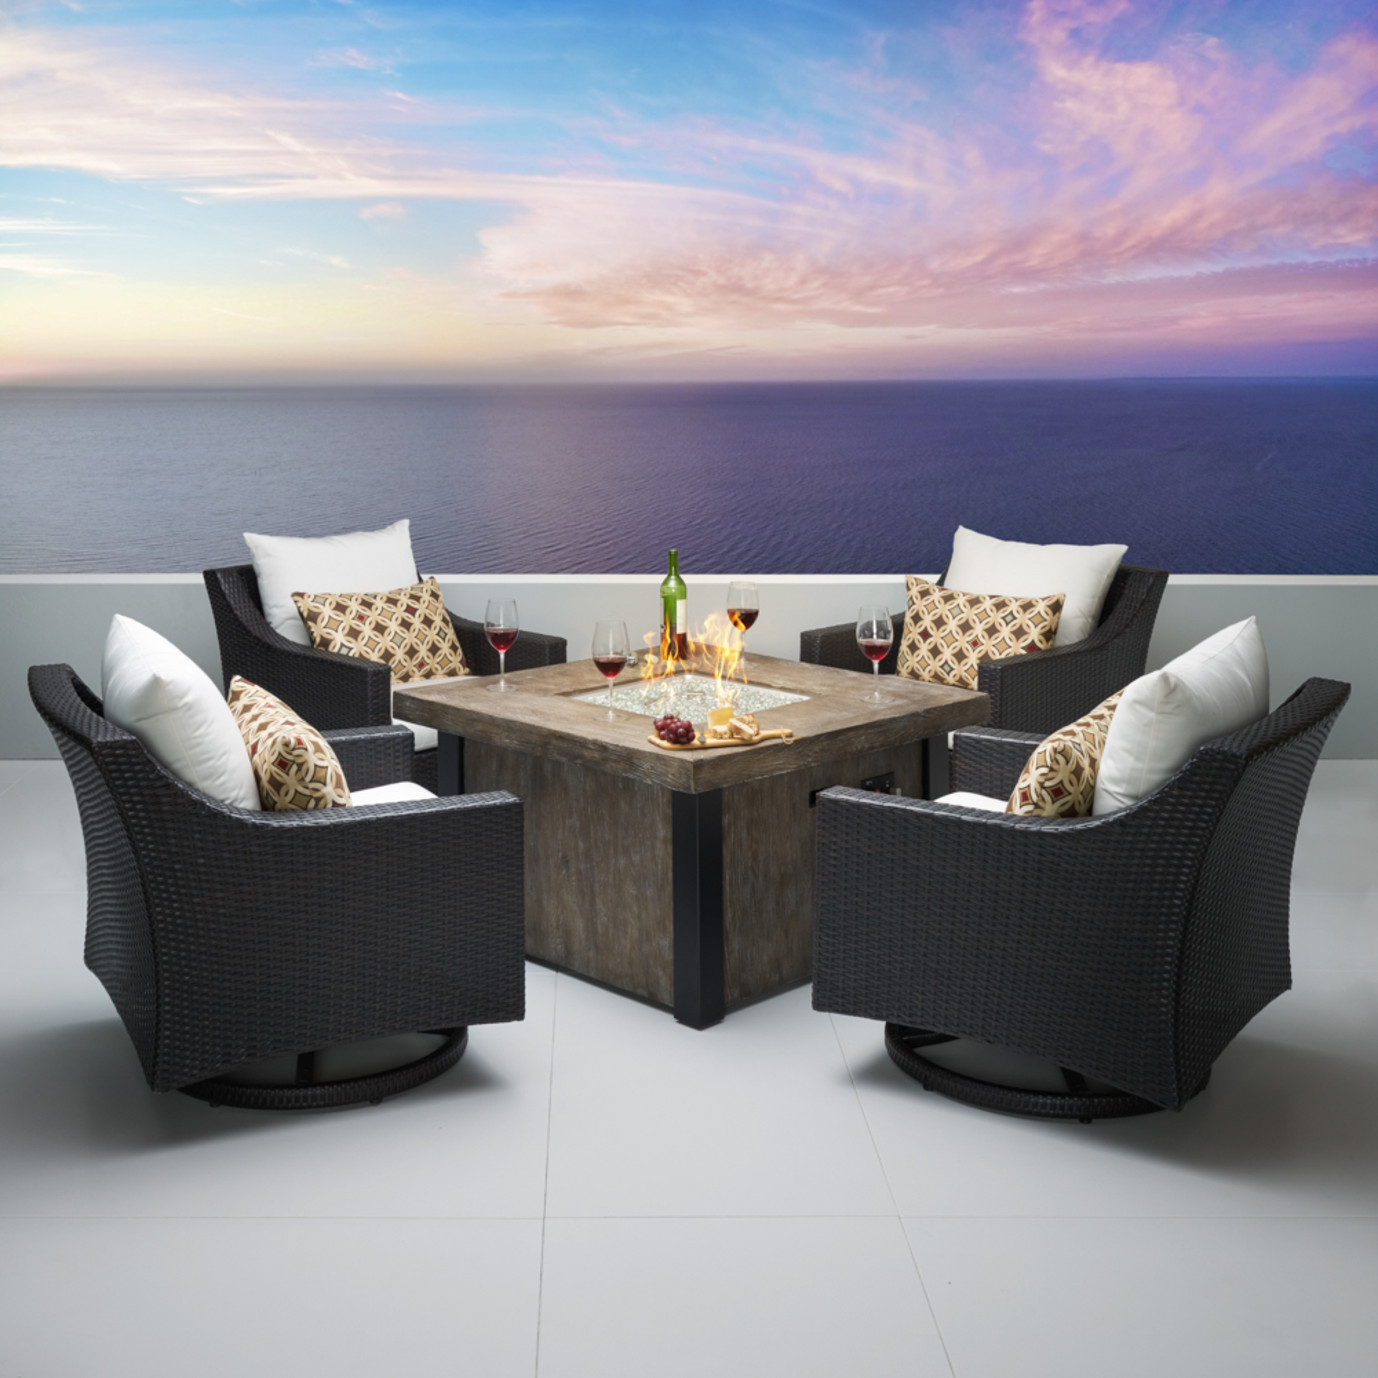 Deco™ 5 Piece Motion Fire Chat Set - Moroccan Cream